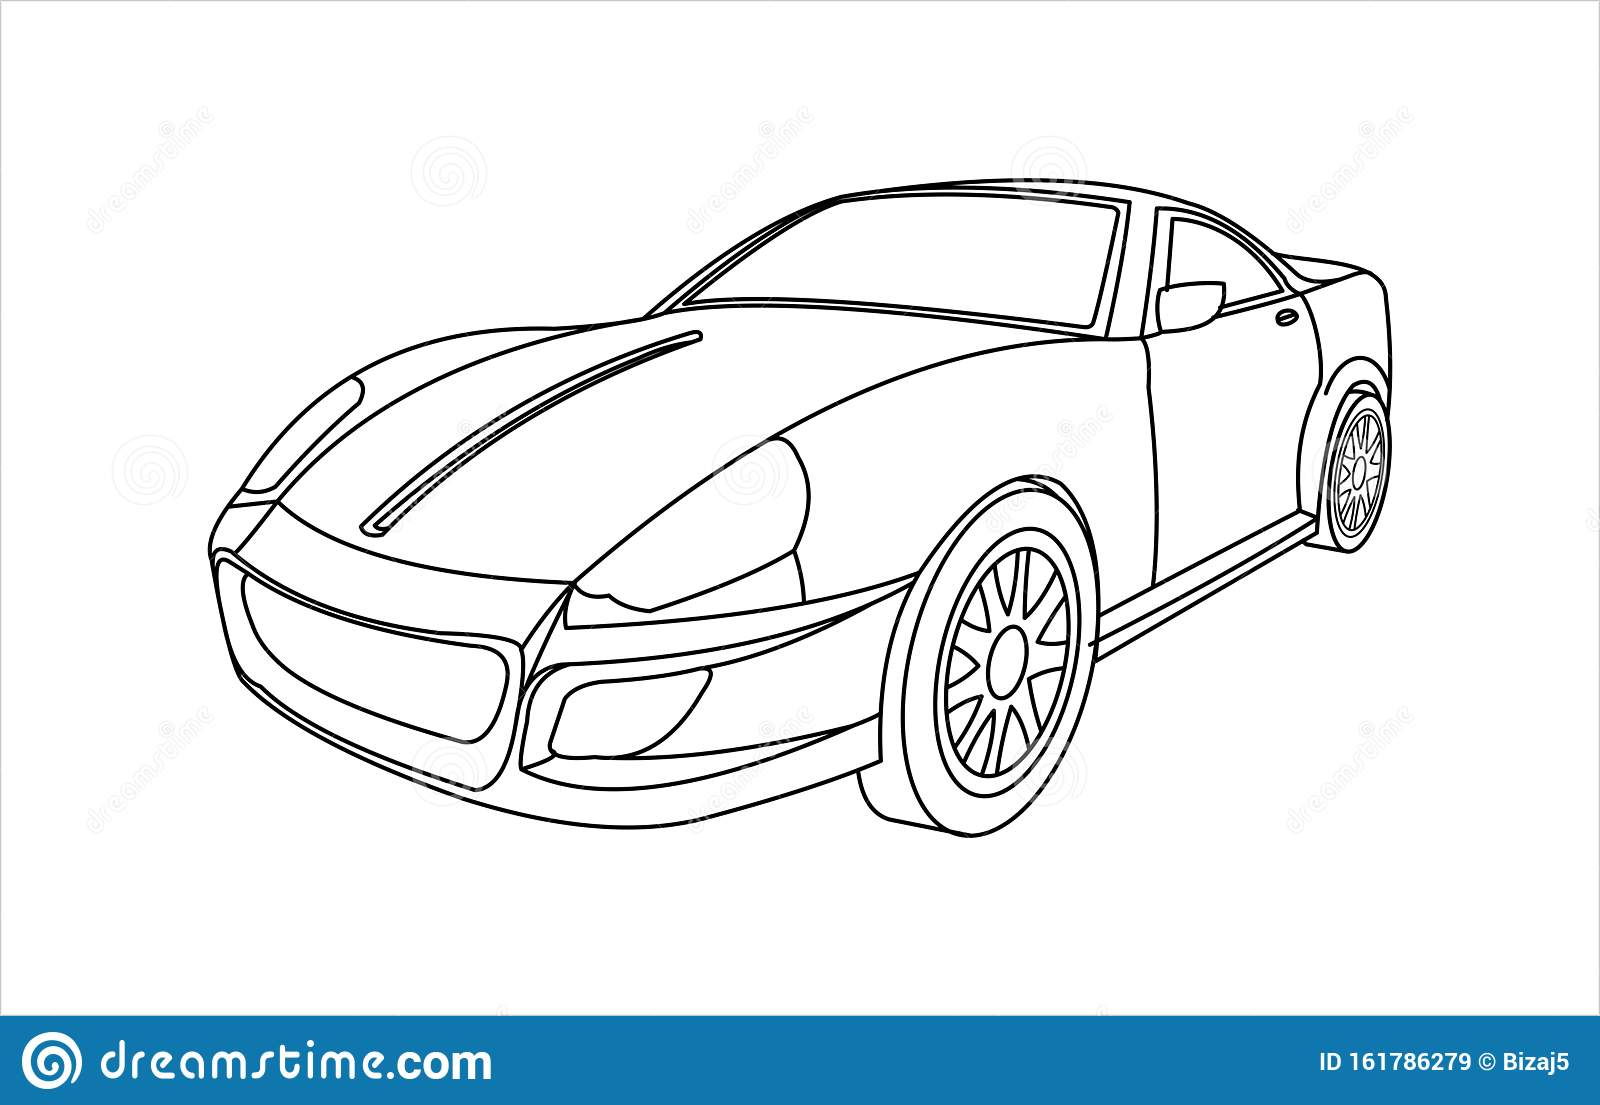 Outline Car For Coloring Book For Kids And Adults. Fast ...